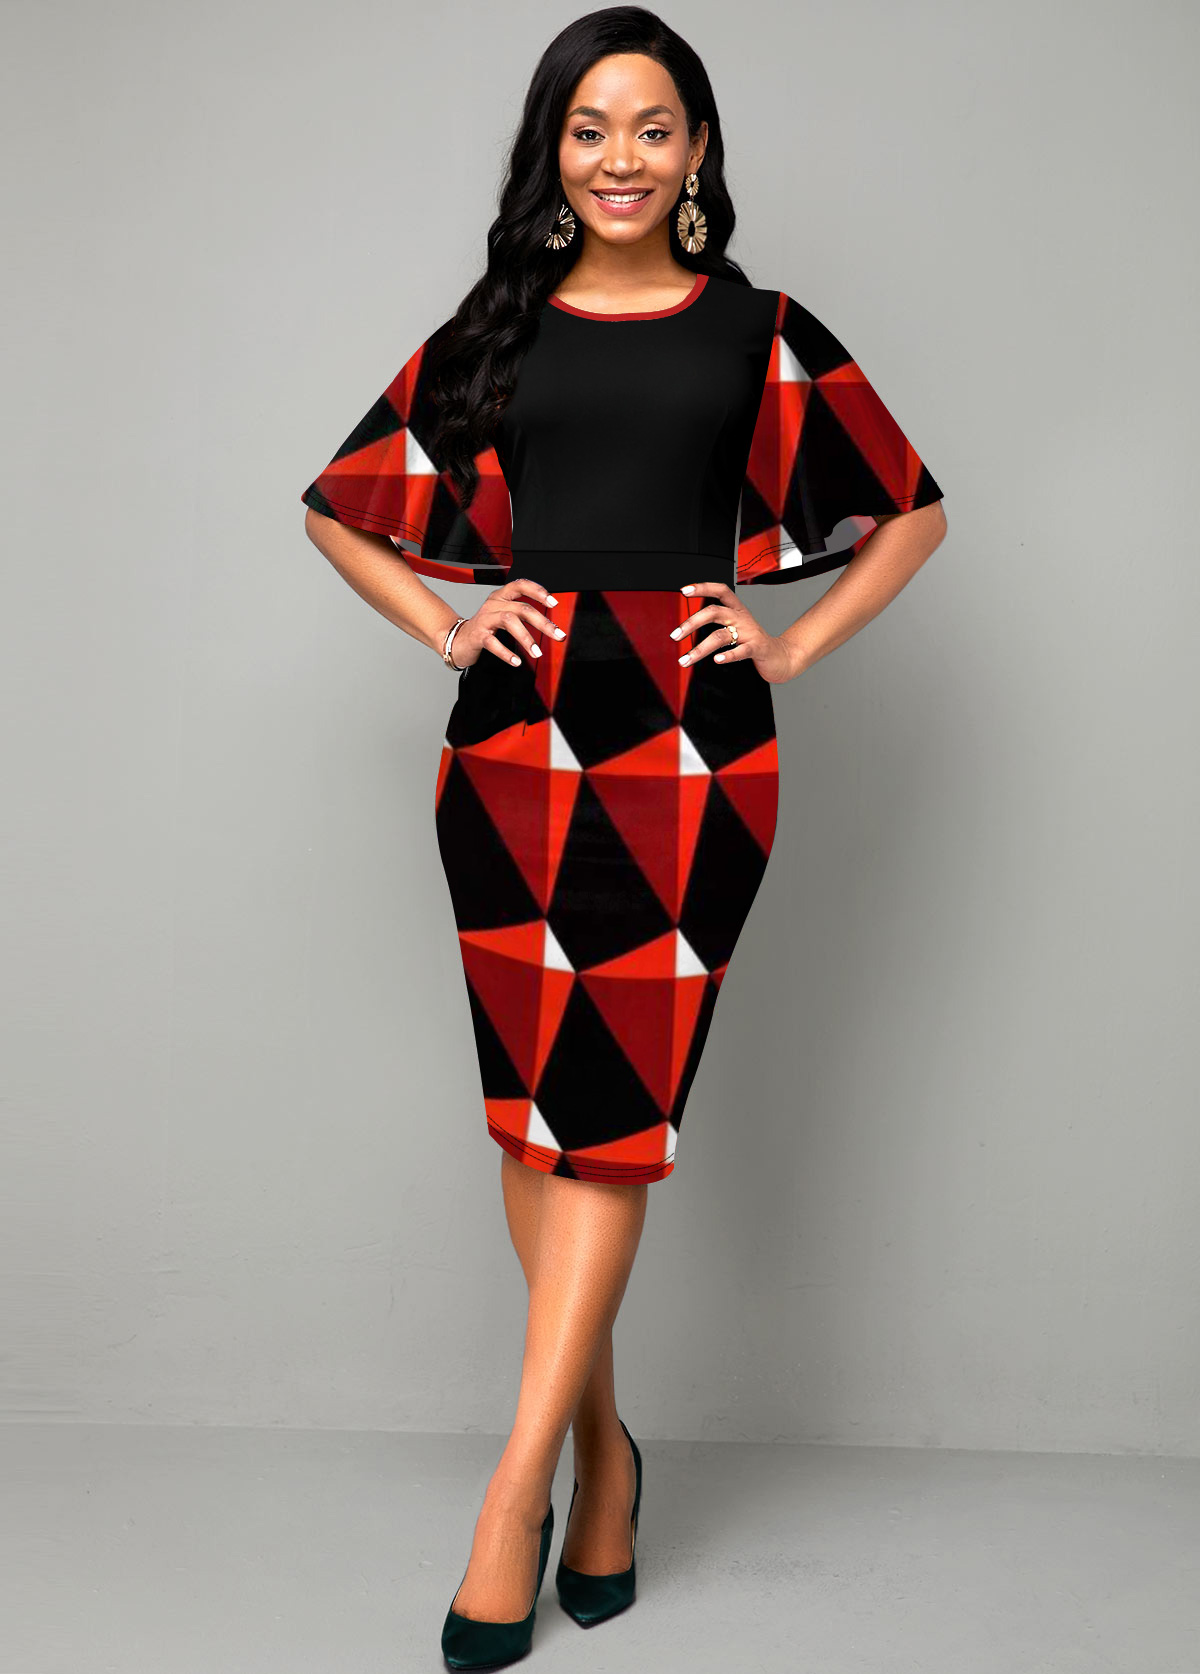 ROTITA Ruffle Overlay Geometric Print Round Neck Dress